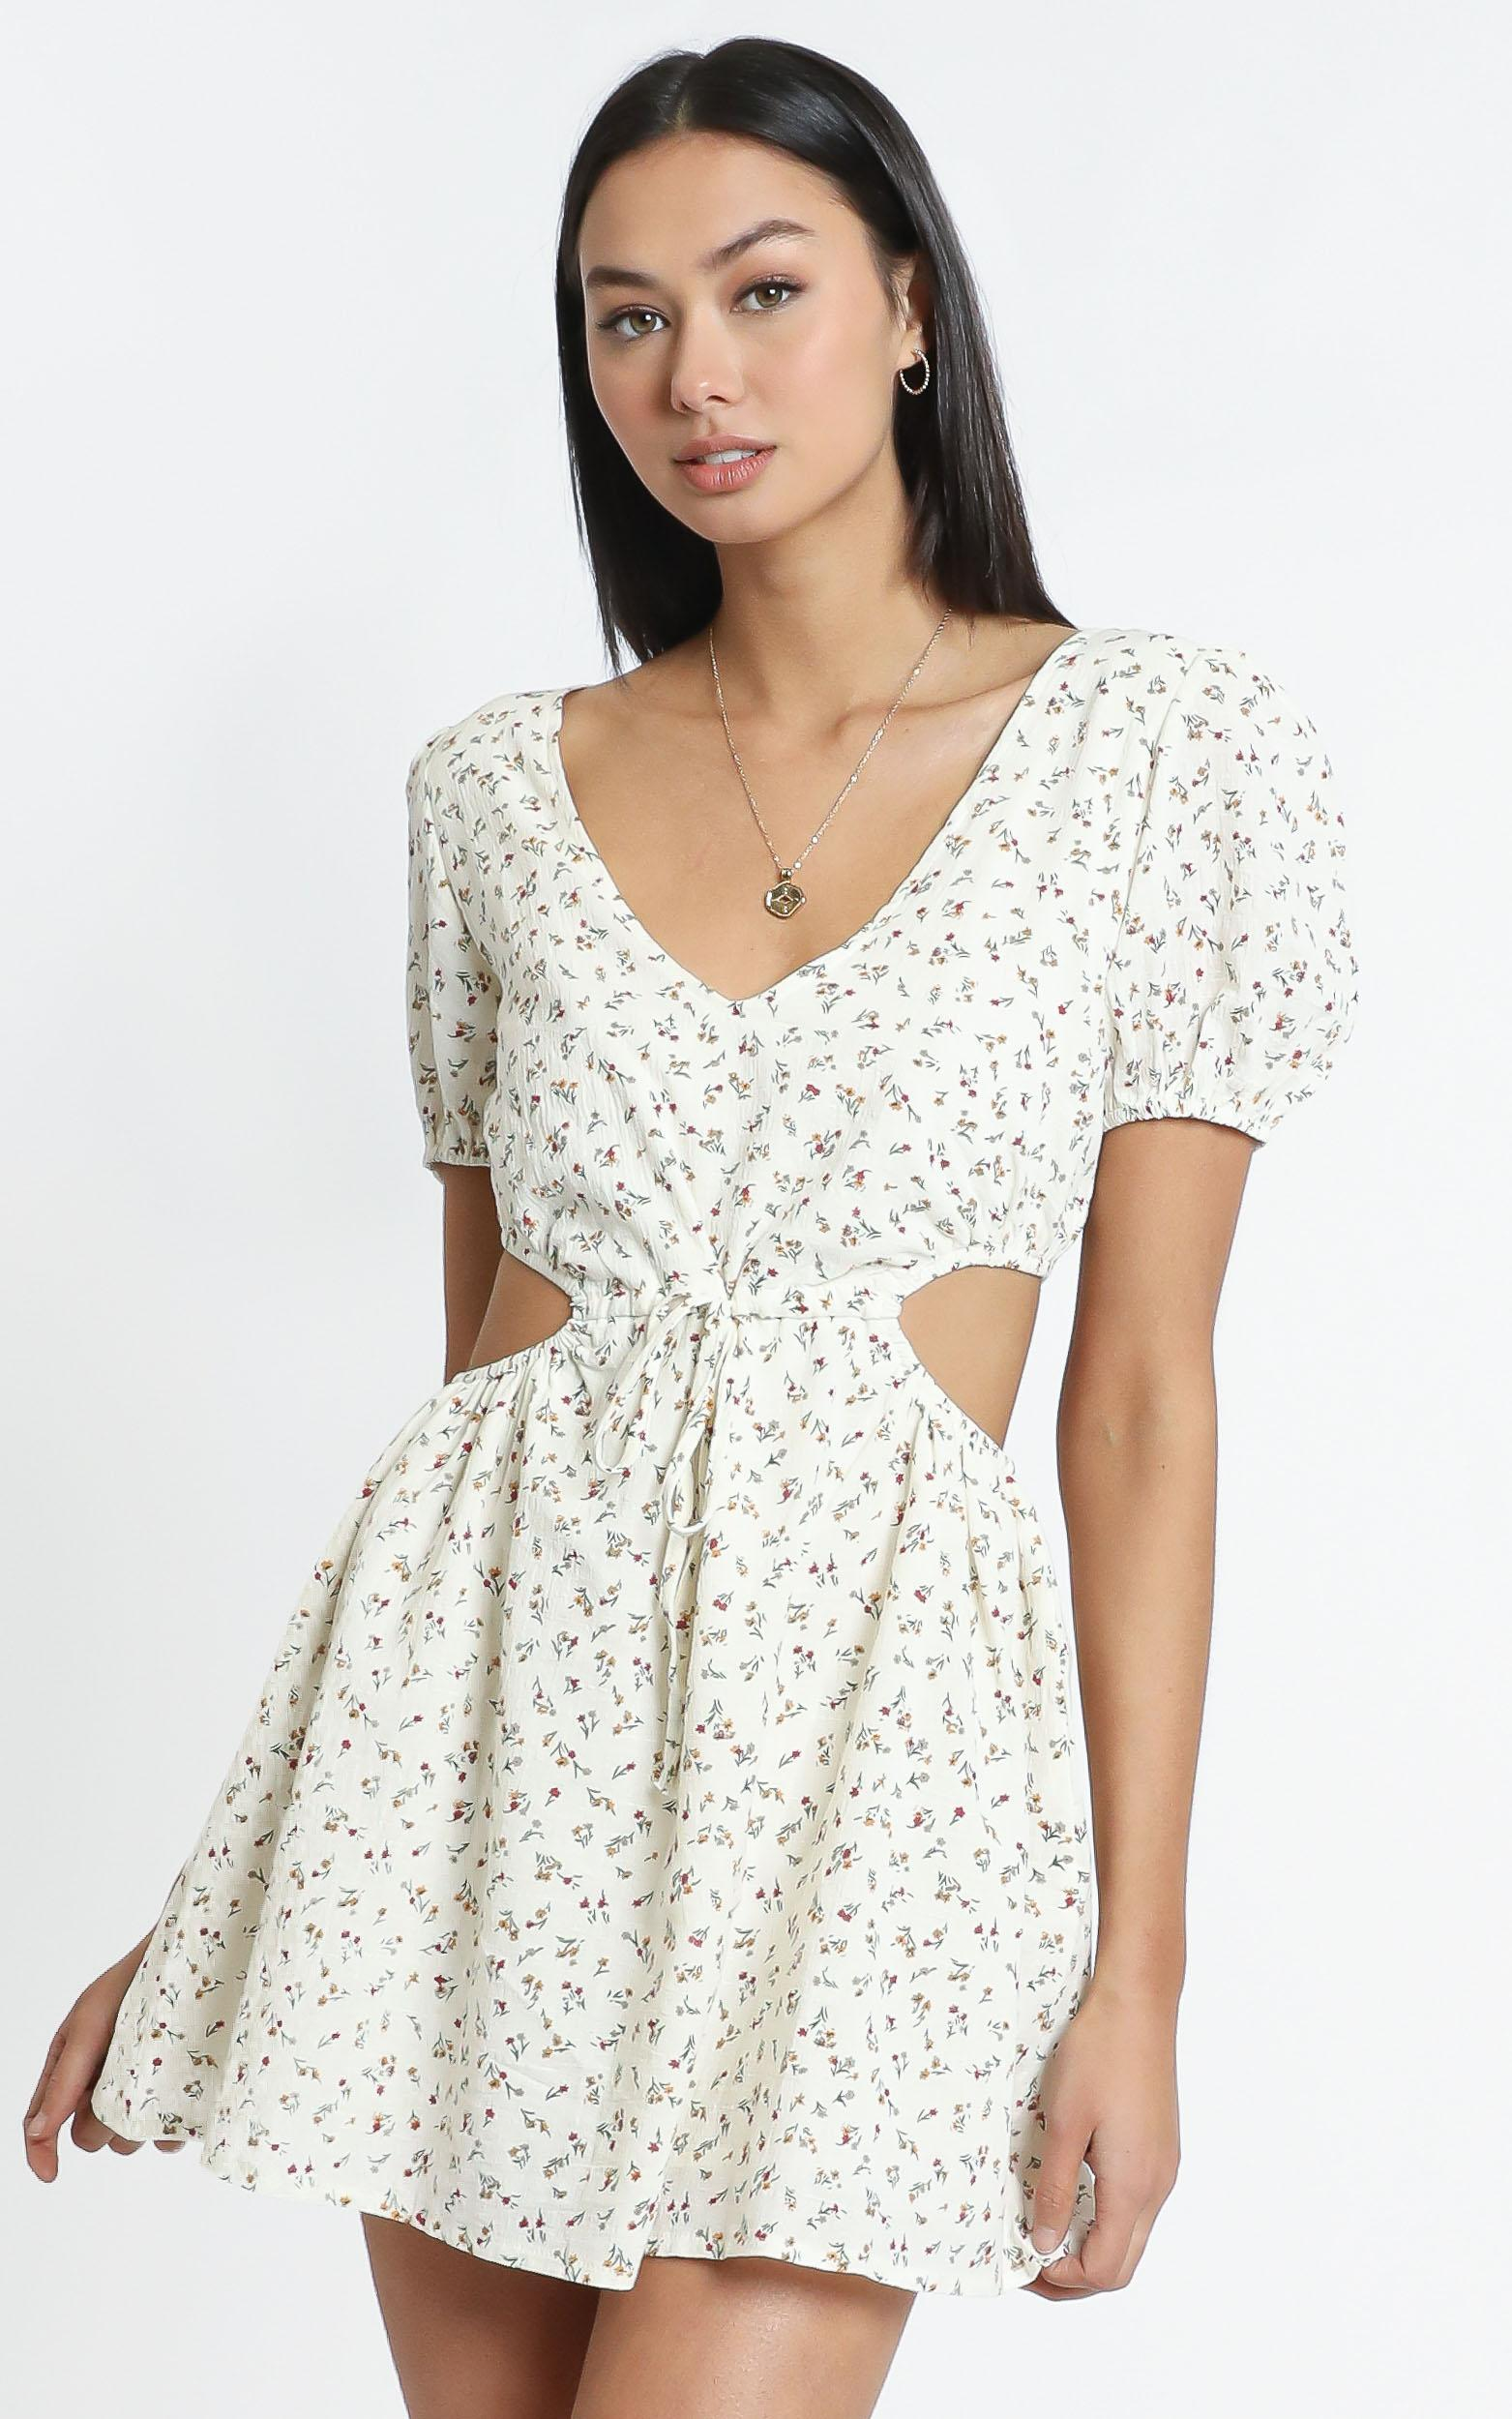 Guinevere dress in White Floral - 16 (XXL), White, hi-res image number null